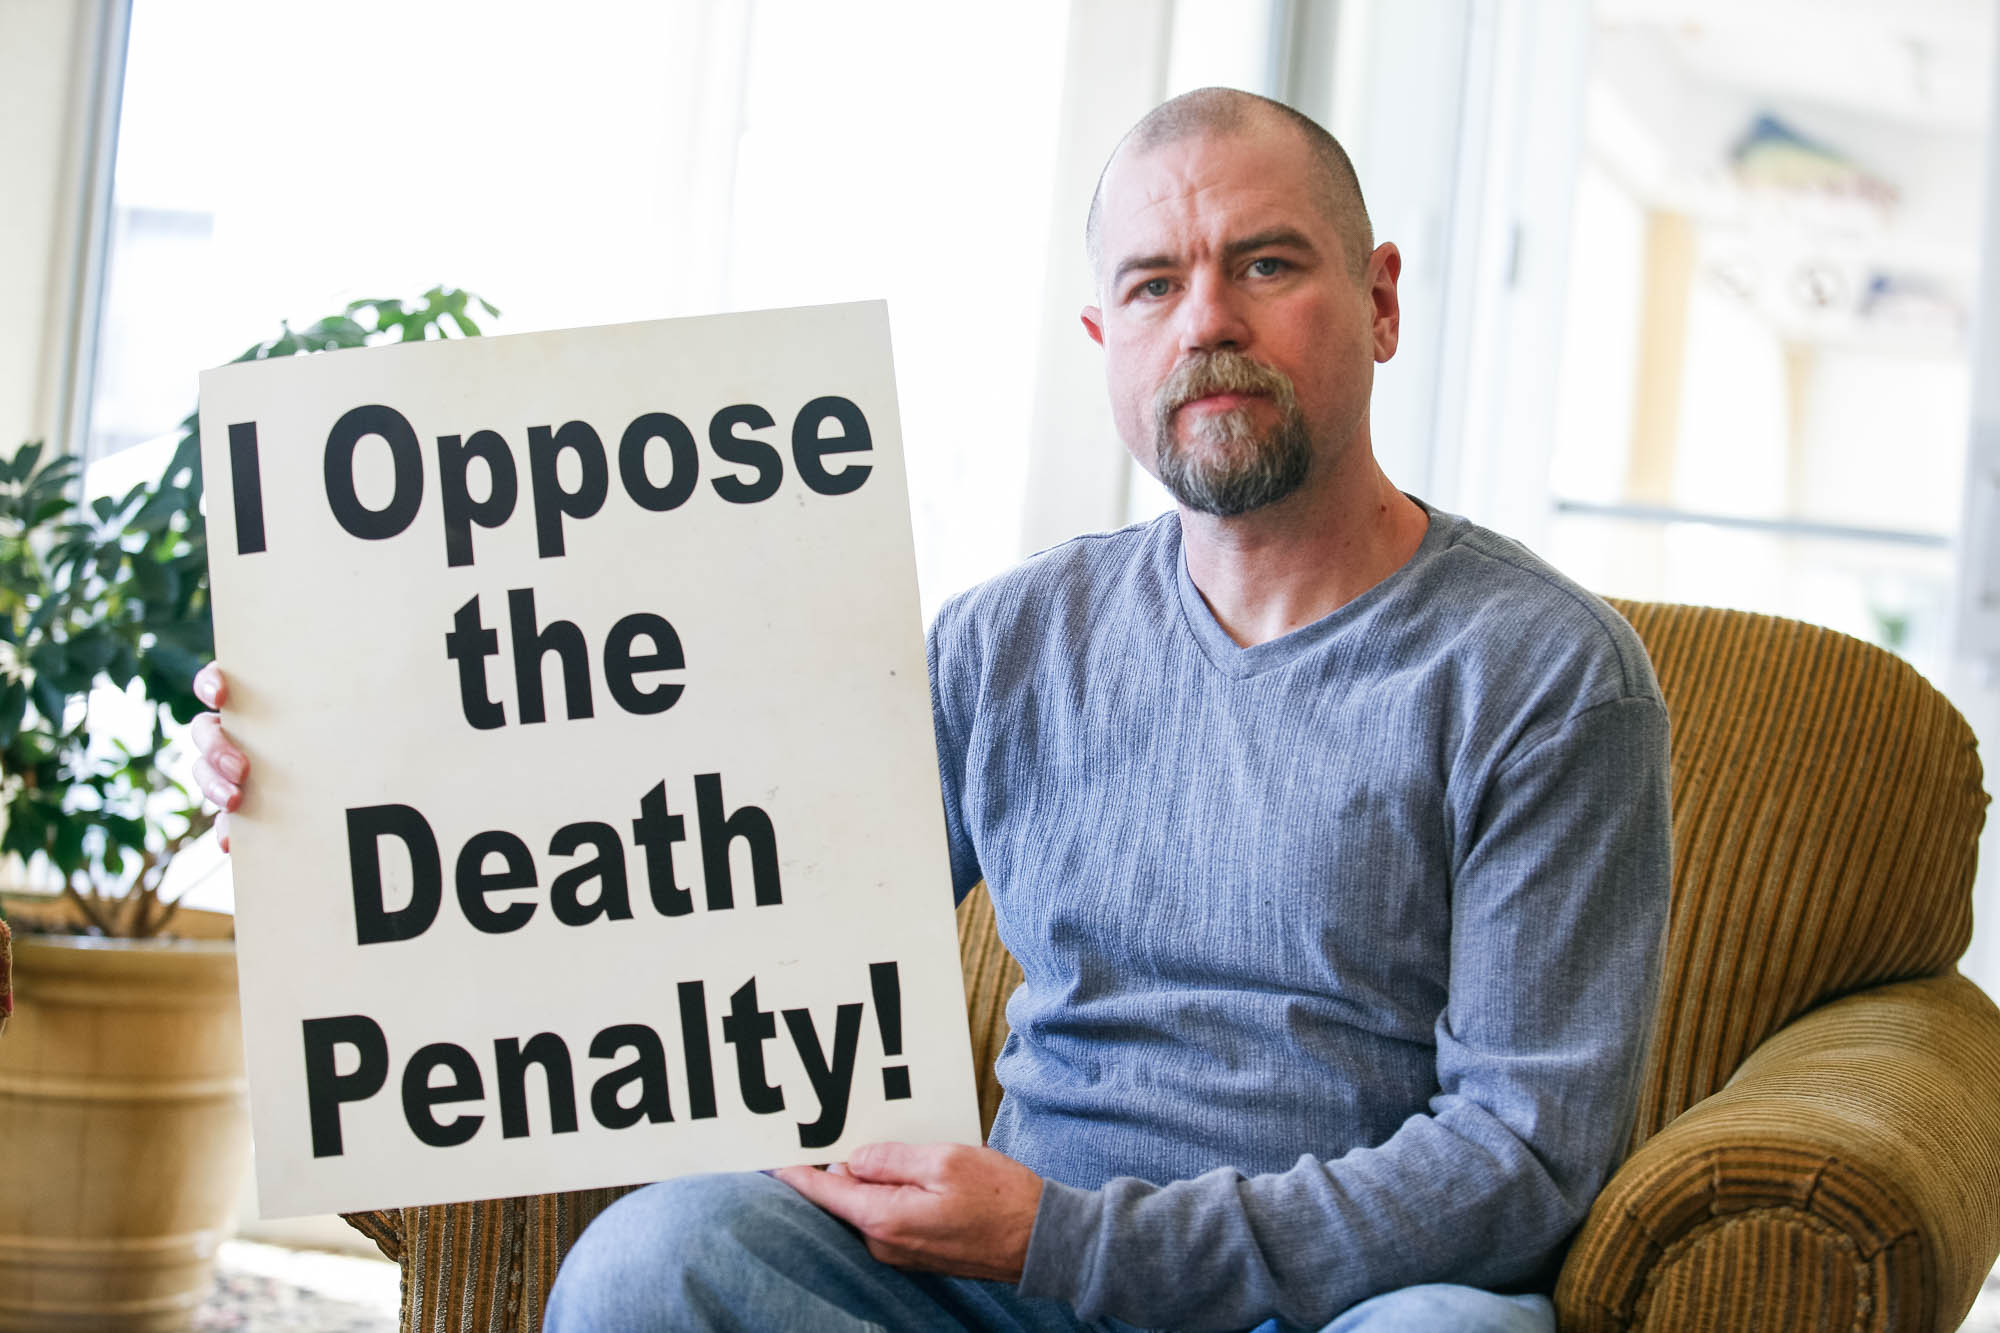 Curtis McCarty - Oklahoma - death row innocent, wrongful conviction, exonerated